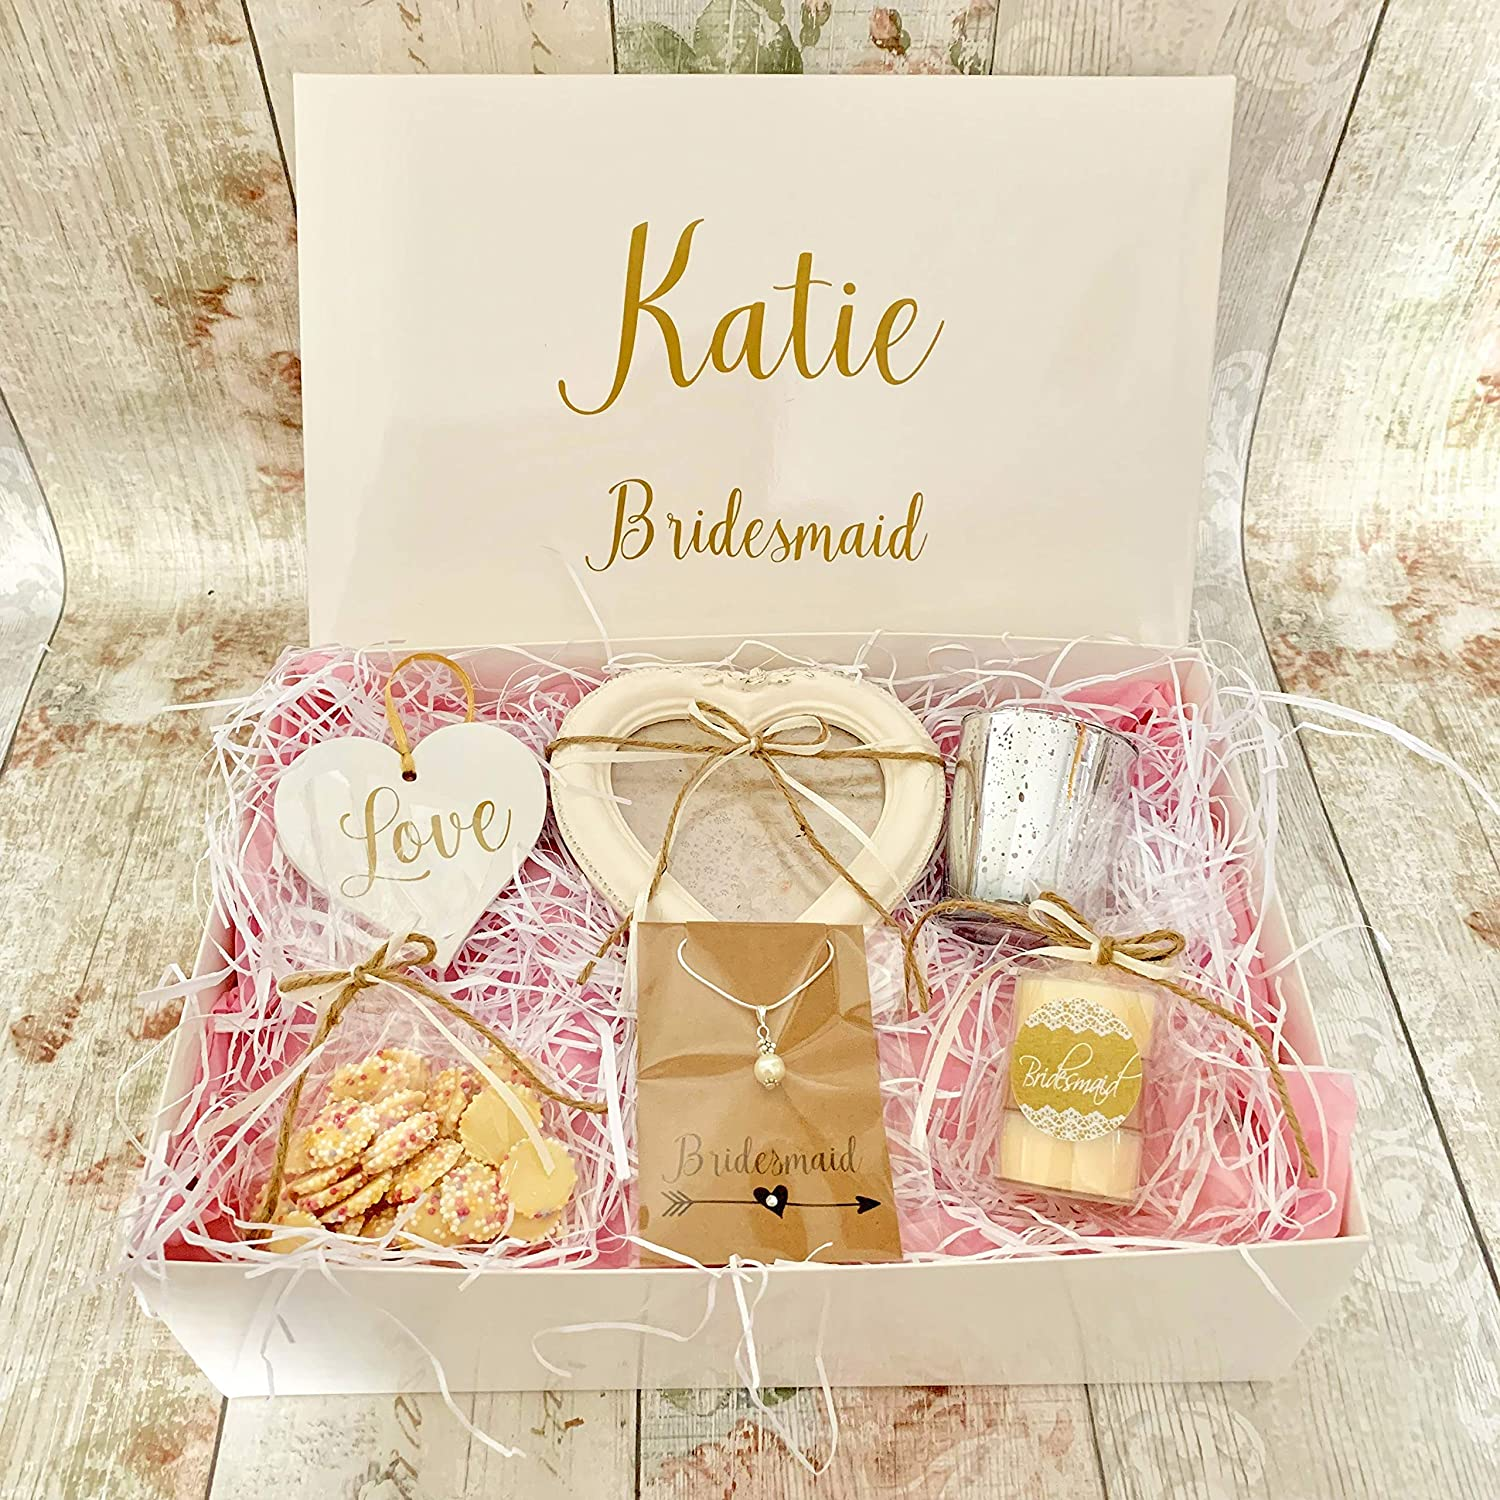 Countdown Celebrate Personalised Bridesmaid Or Maid Of Honour Gift Box Hamper Wedding Thank You Shabby Chic Amazon Co Uk Kitchen Home